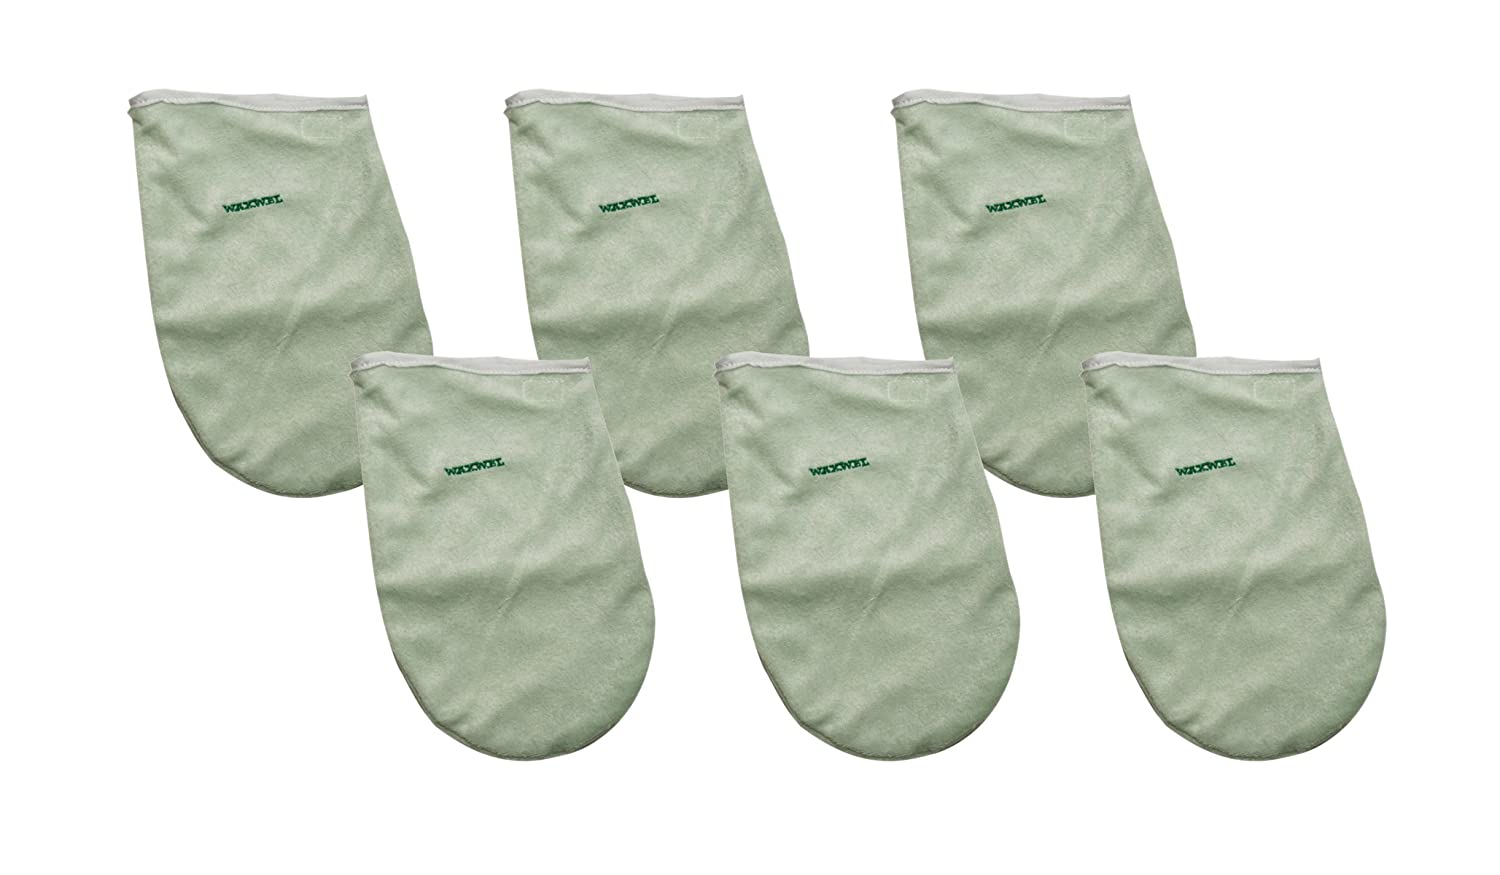 WaxWel 11-1711 6 Piece Terry Hand Mitt Set for Paraffin Treatments